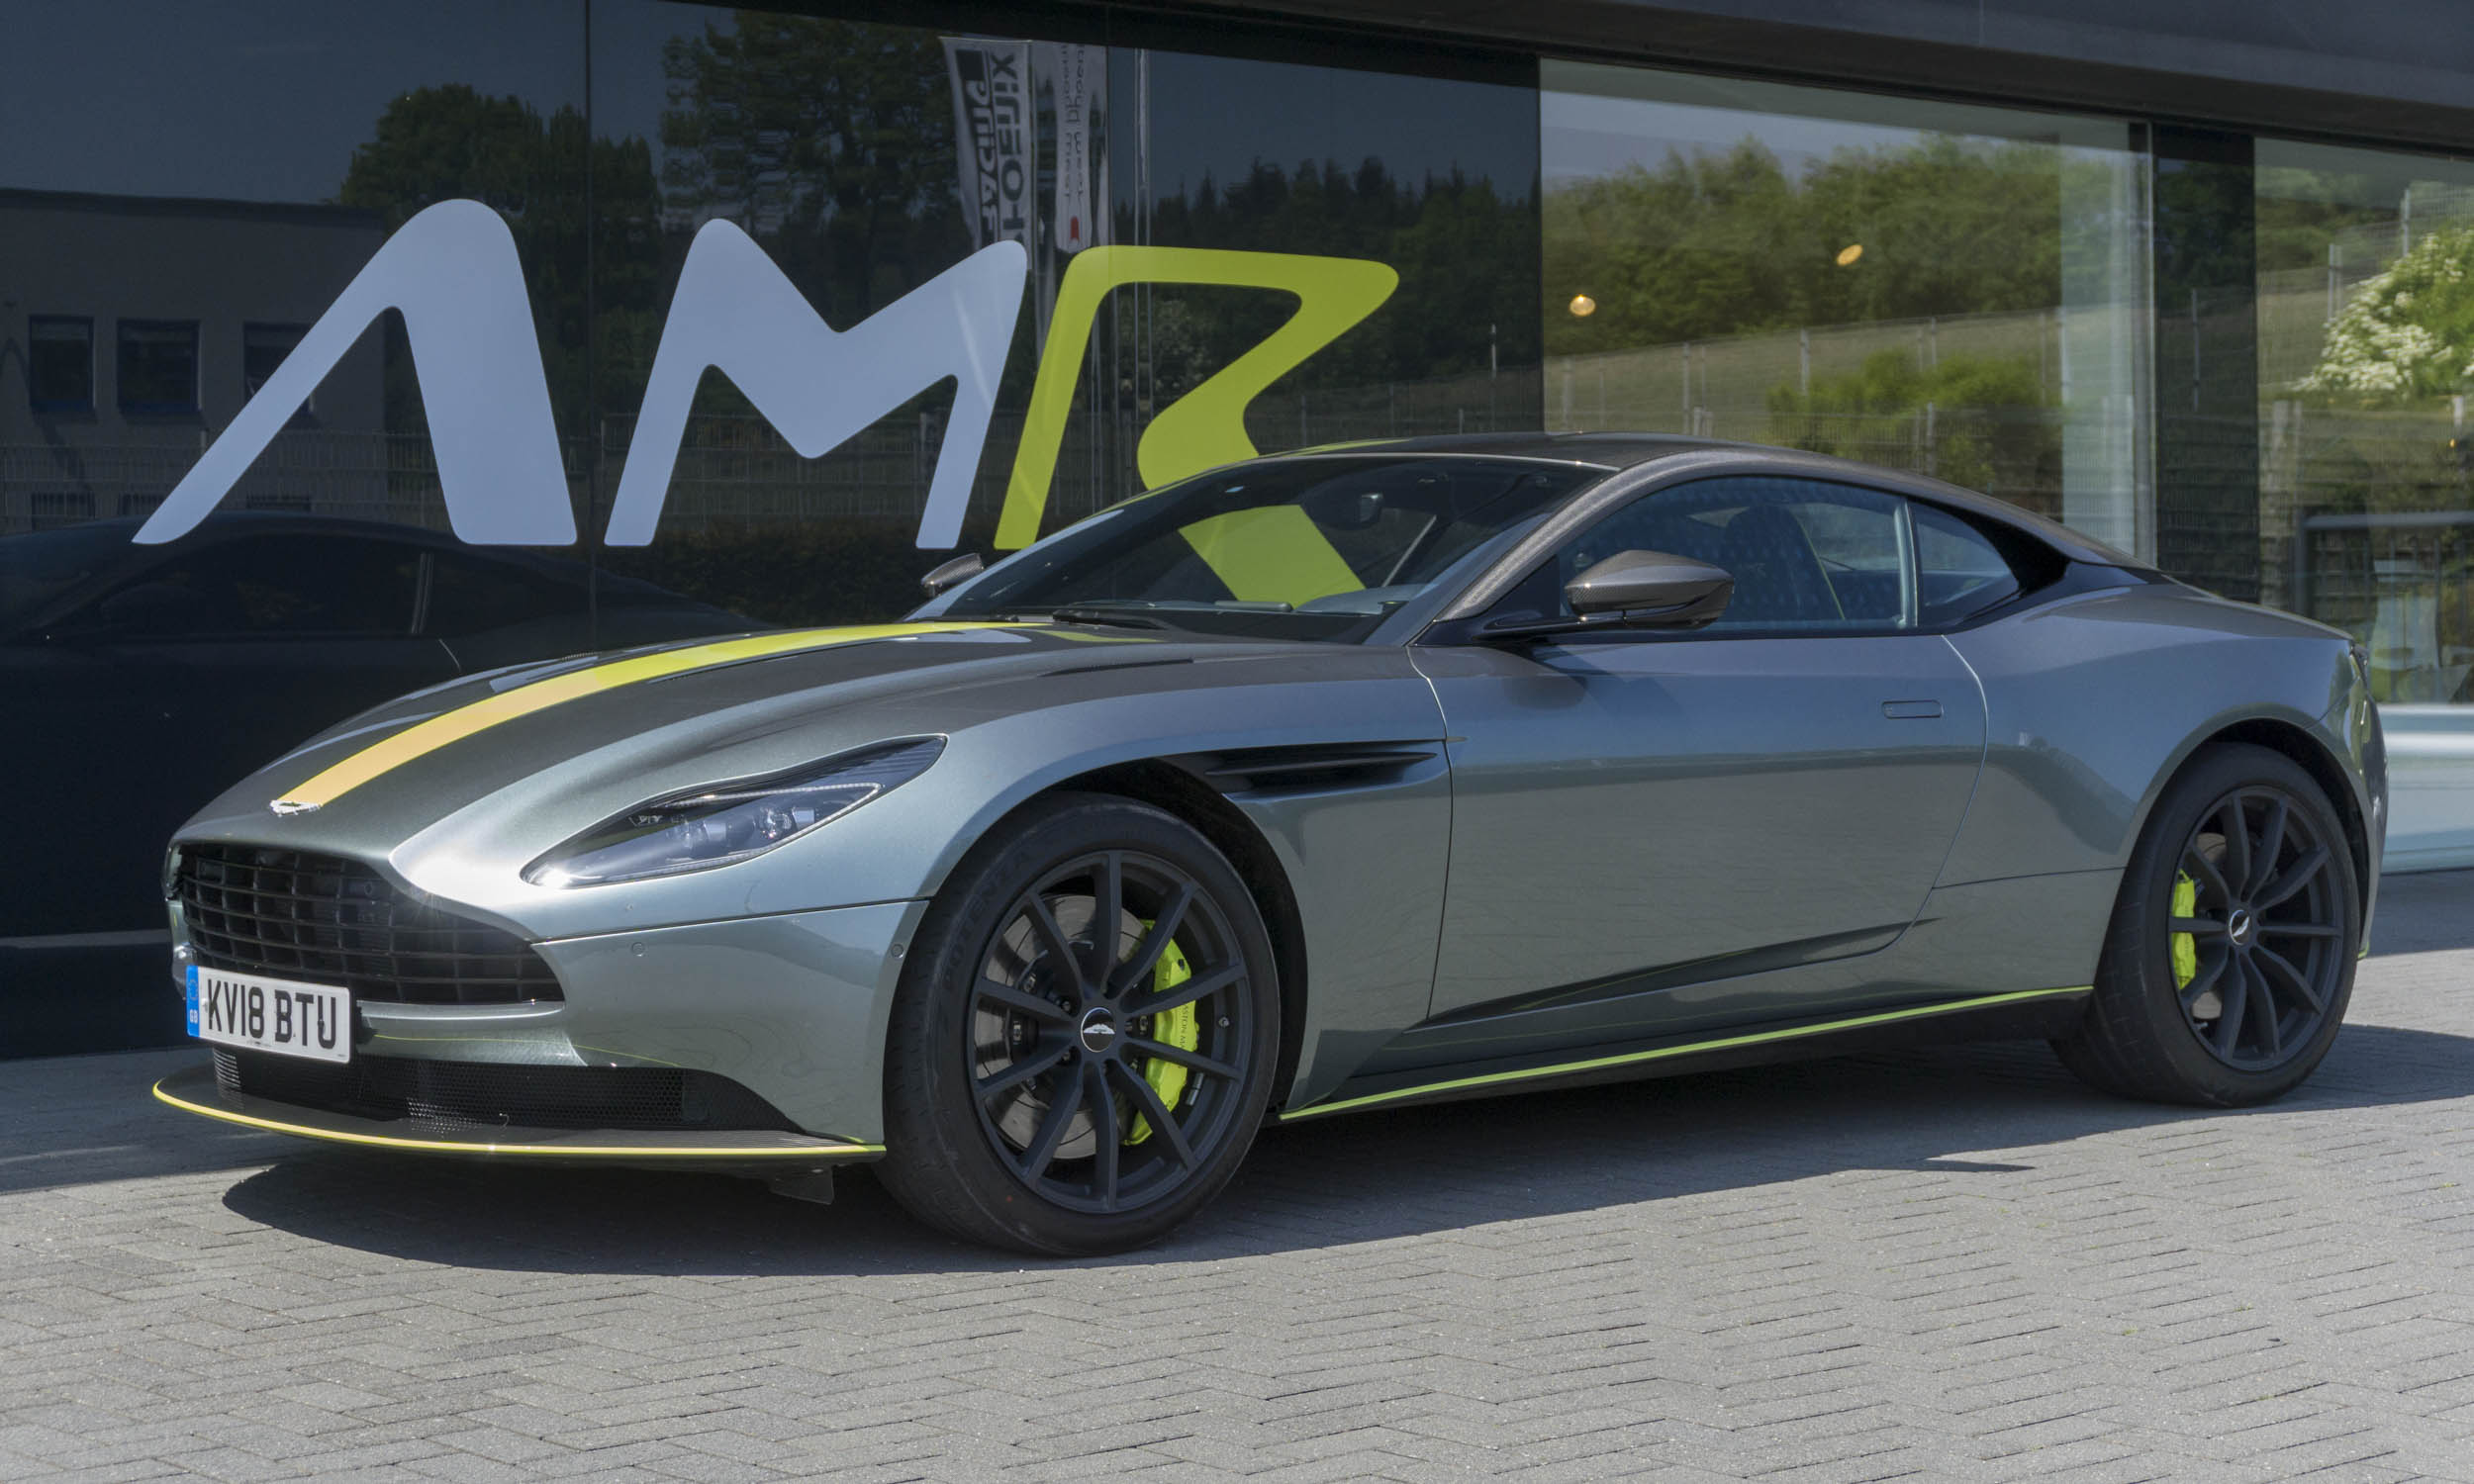 2019 Aston Martin DB11 AMR: First Drive Review